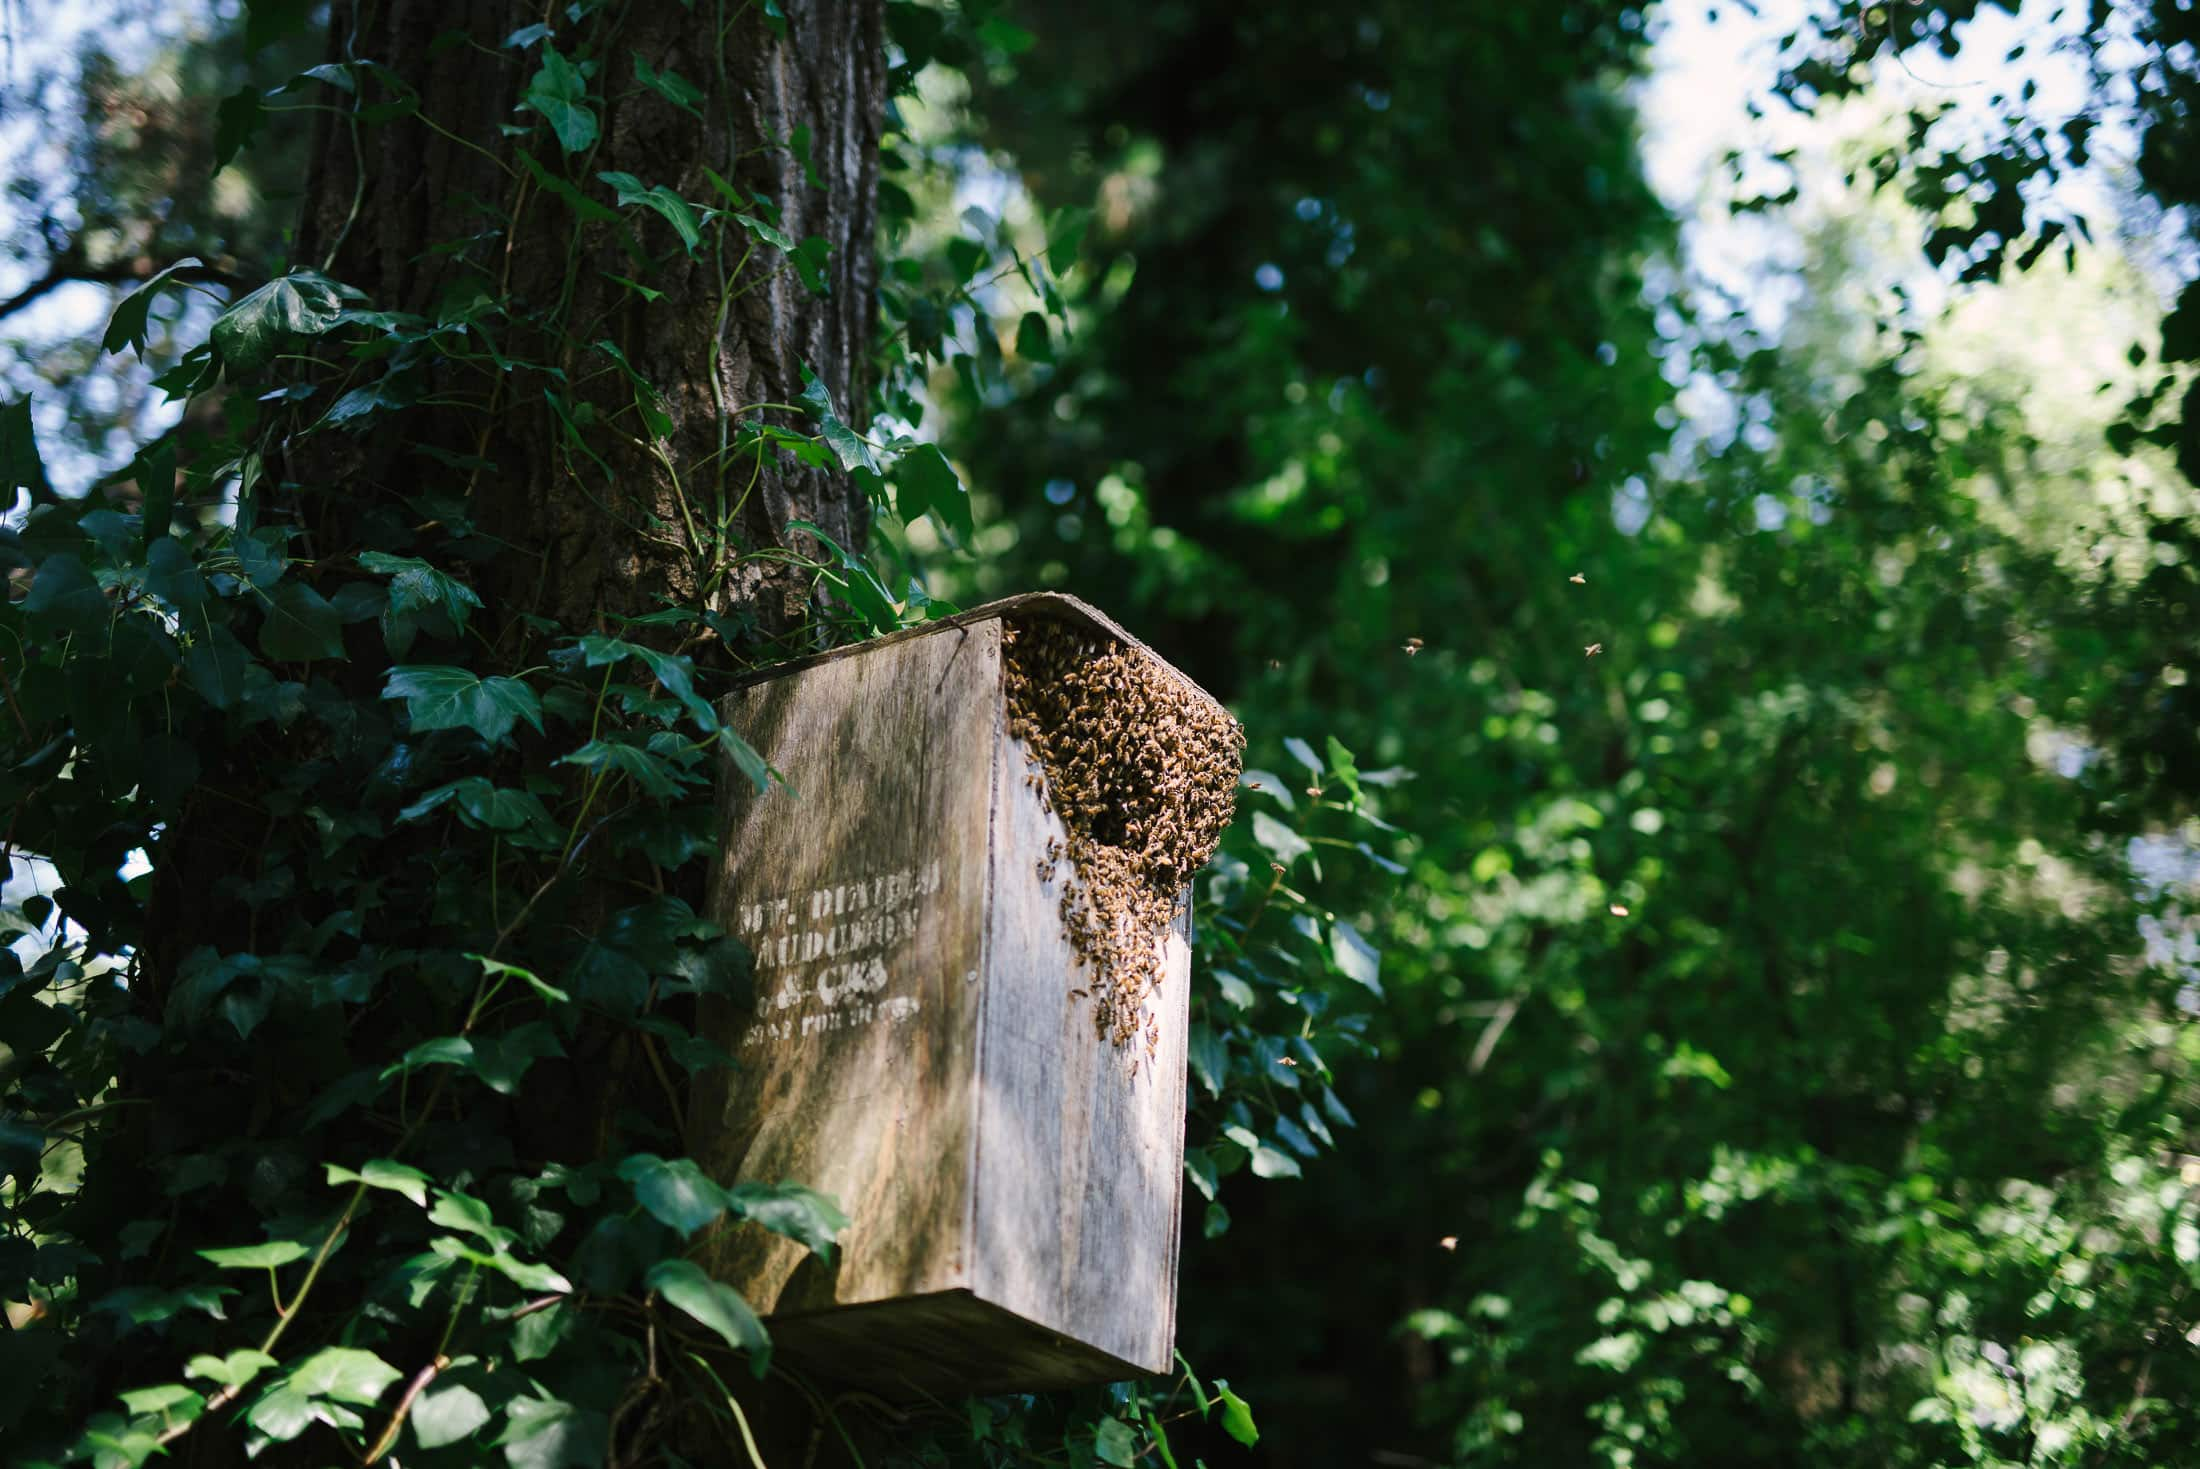 Bees in a box on a tree